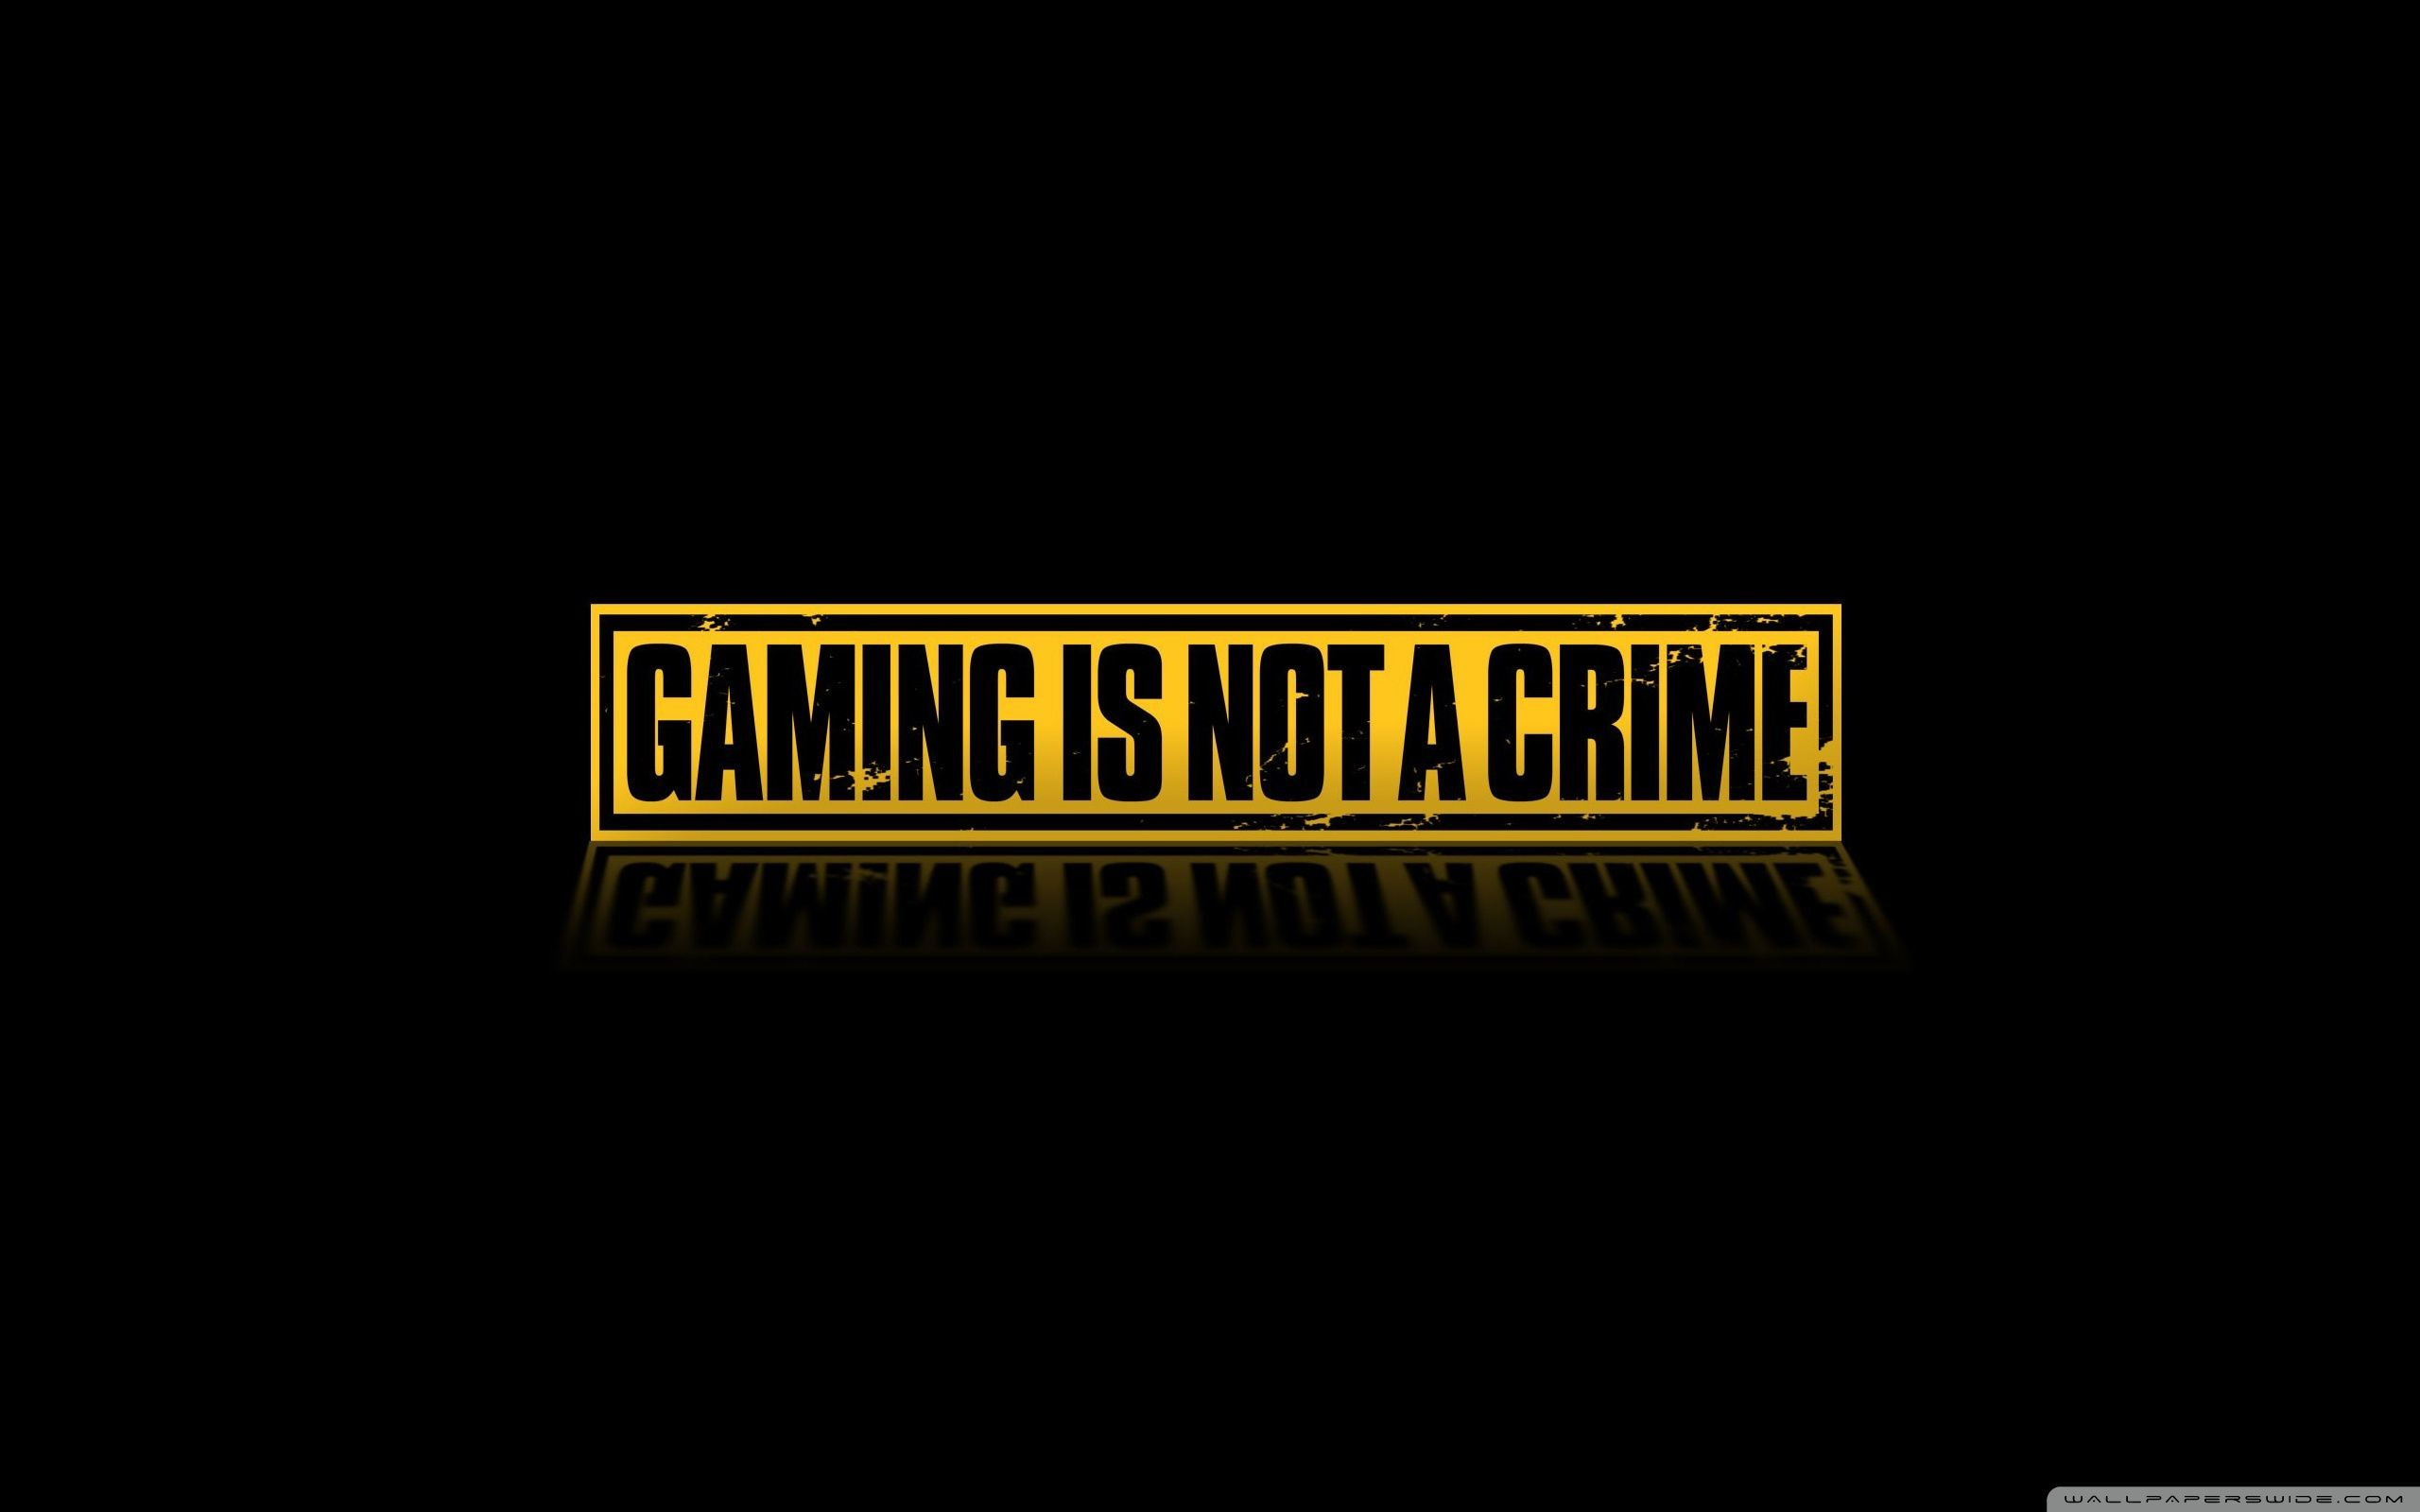 2560x1600 Gaming Is Not A Crime ❤ 4K HD Desktop Wallpaper for 4K Ultra HD TV .